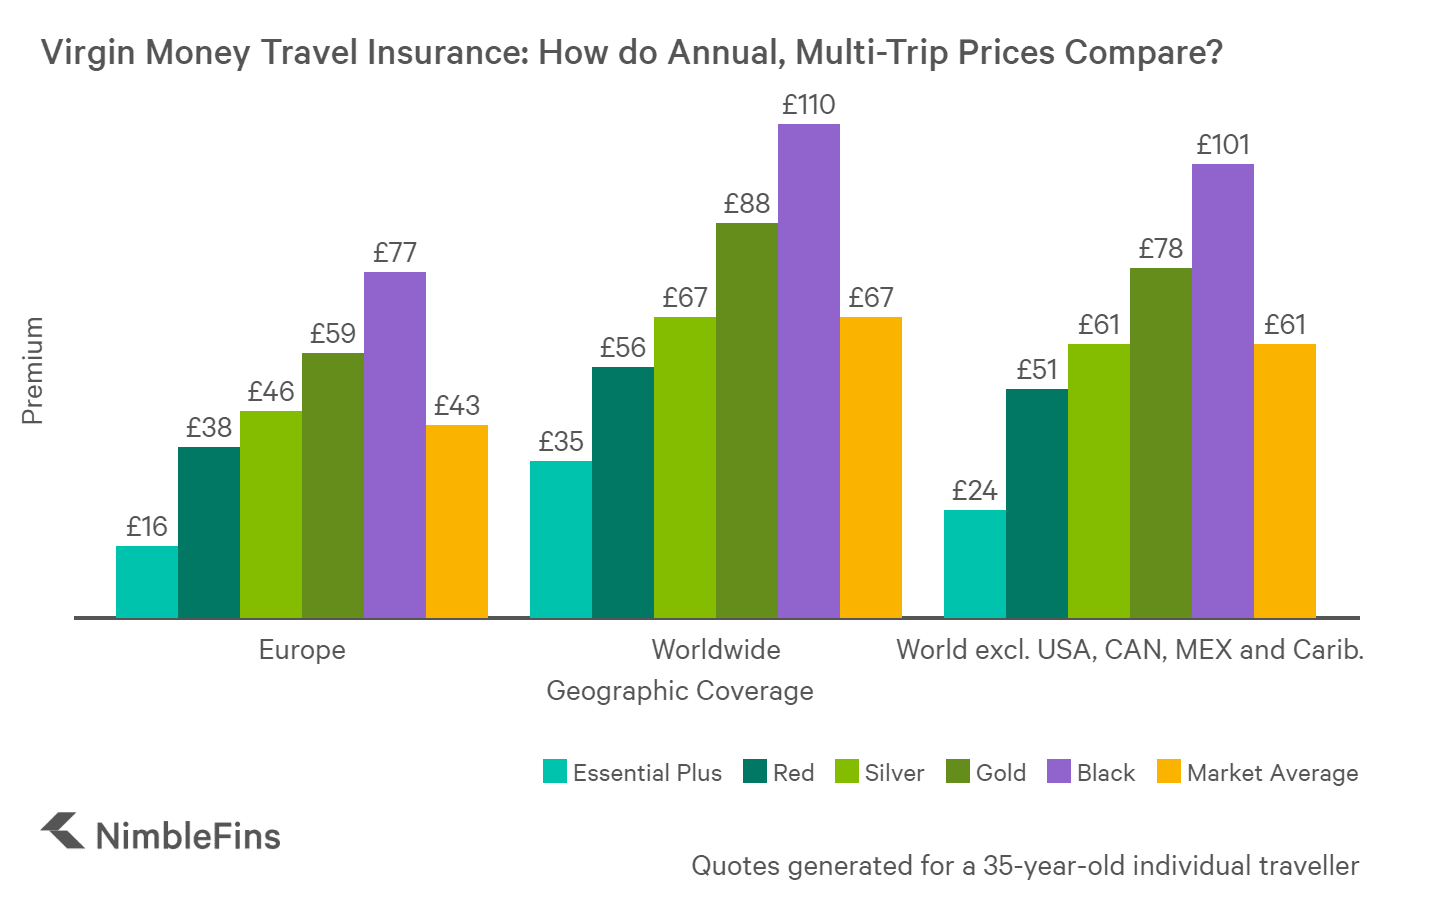 chart showing prices of Virgin Money travel insurance plans compared to the market average